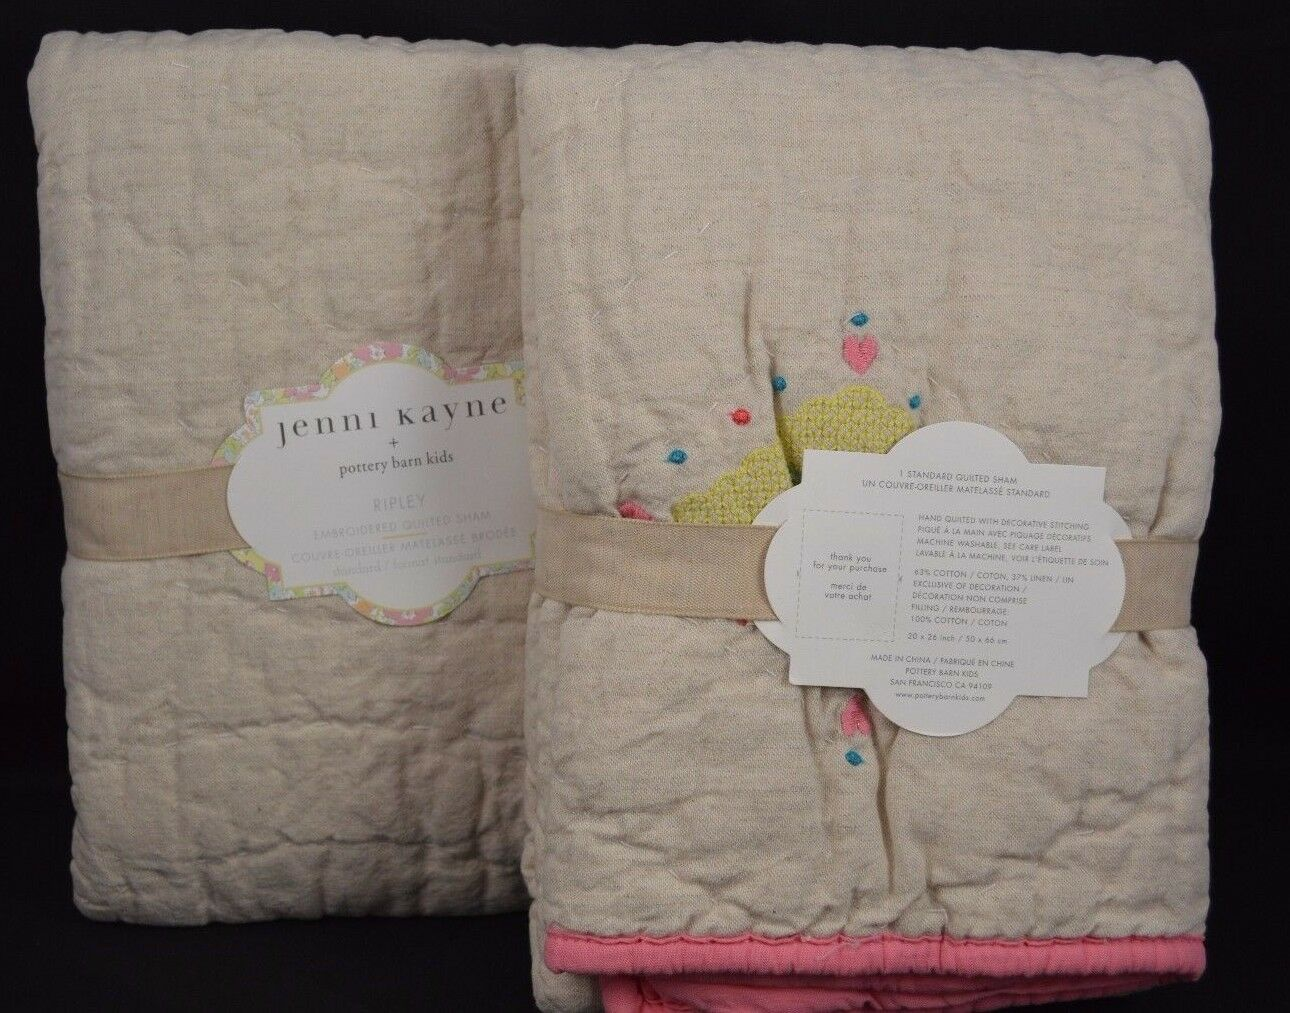 POTTERY BARN Kids JENNI KAYNE Ripley Shams lin Standard sold out S 2  111